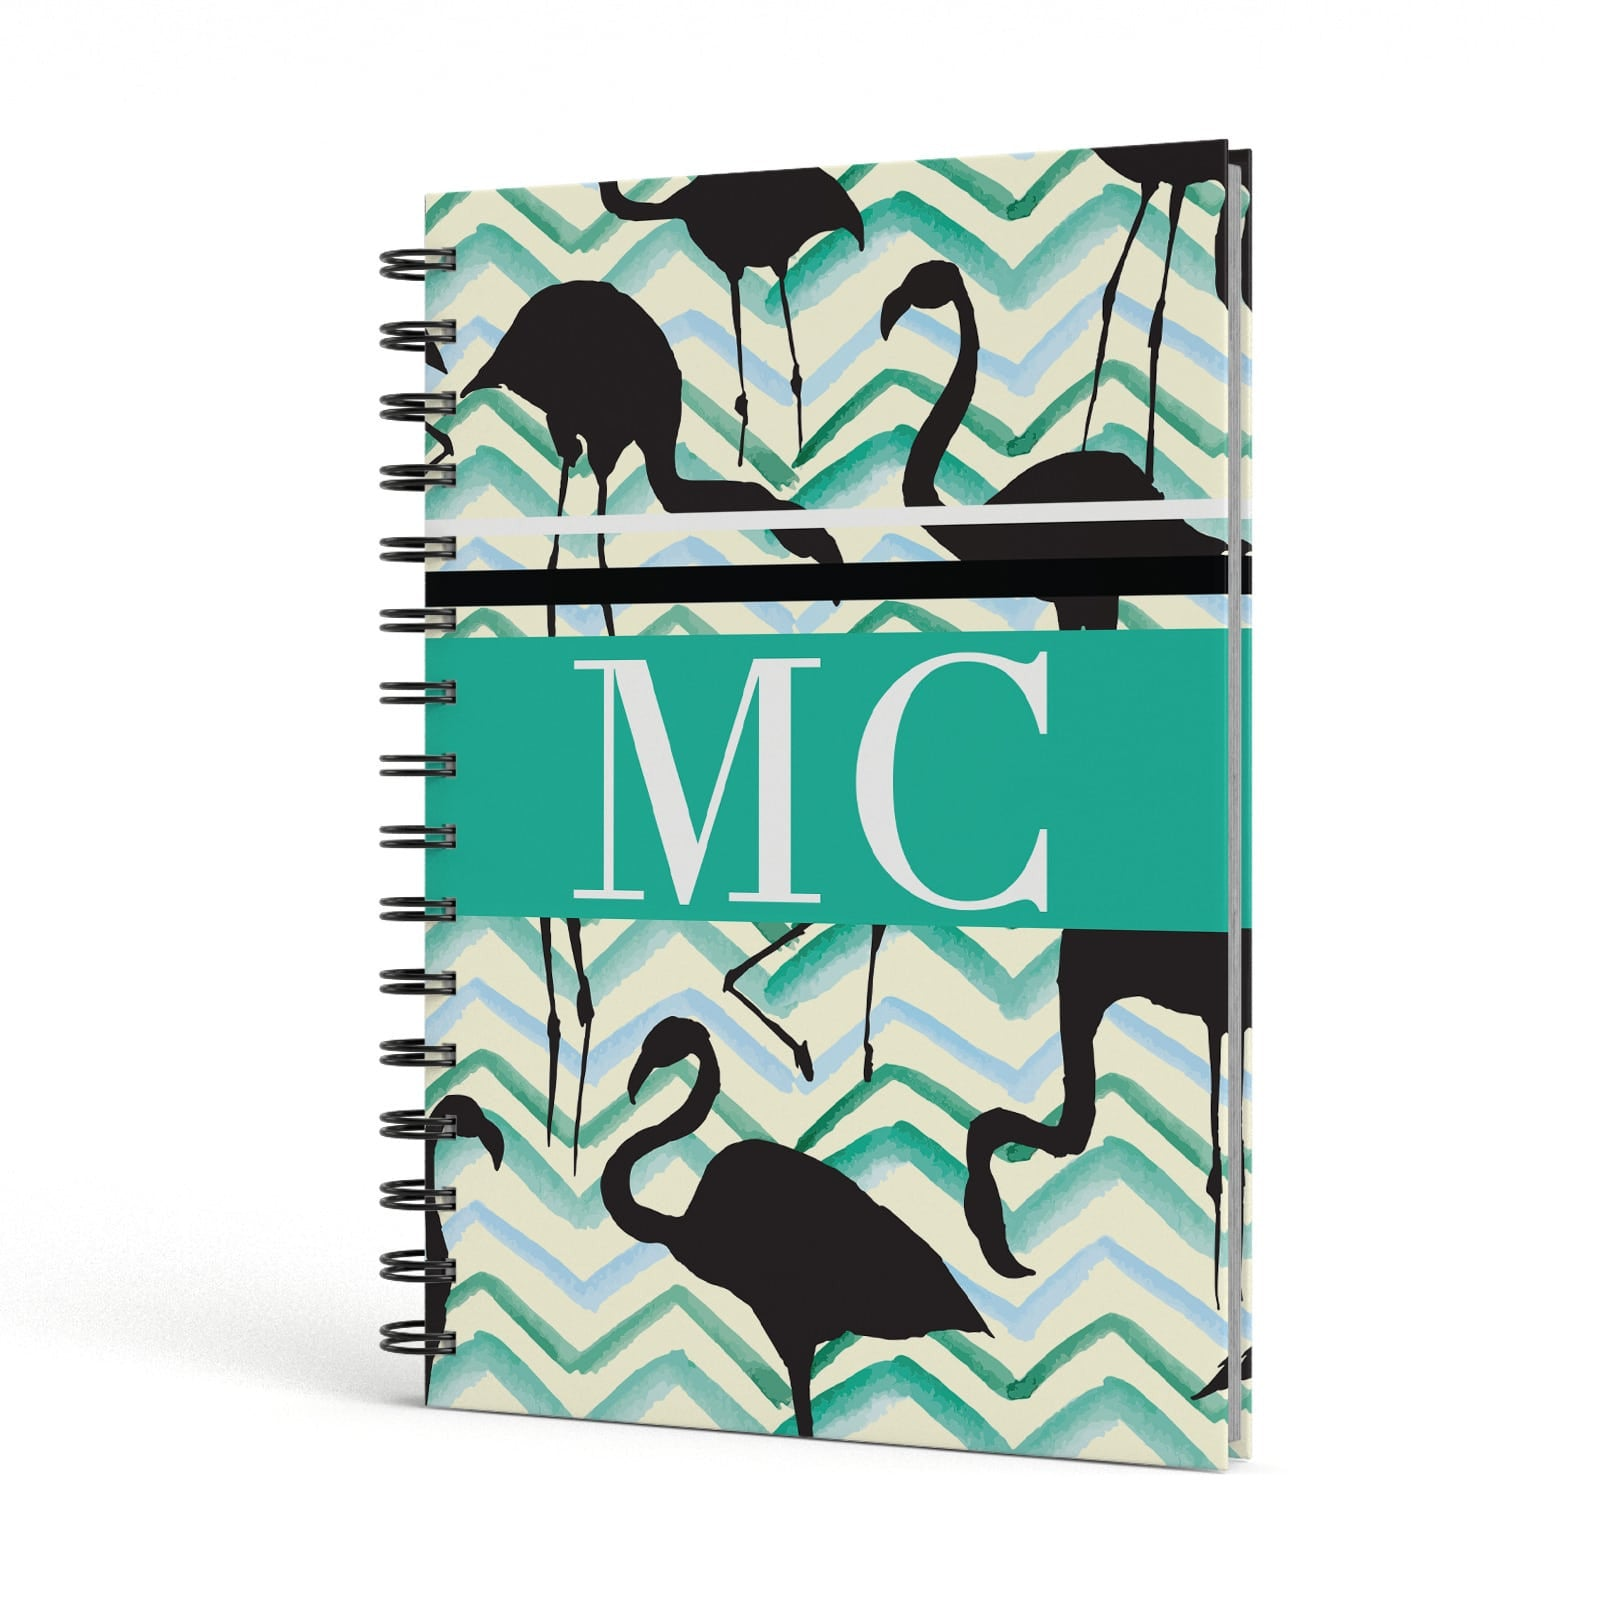 Watercolour Chevron Flamingo A5 Hardcover Notebook Side View